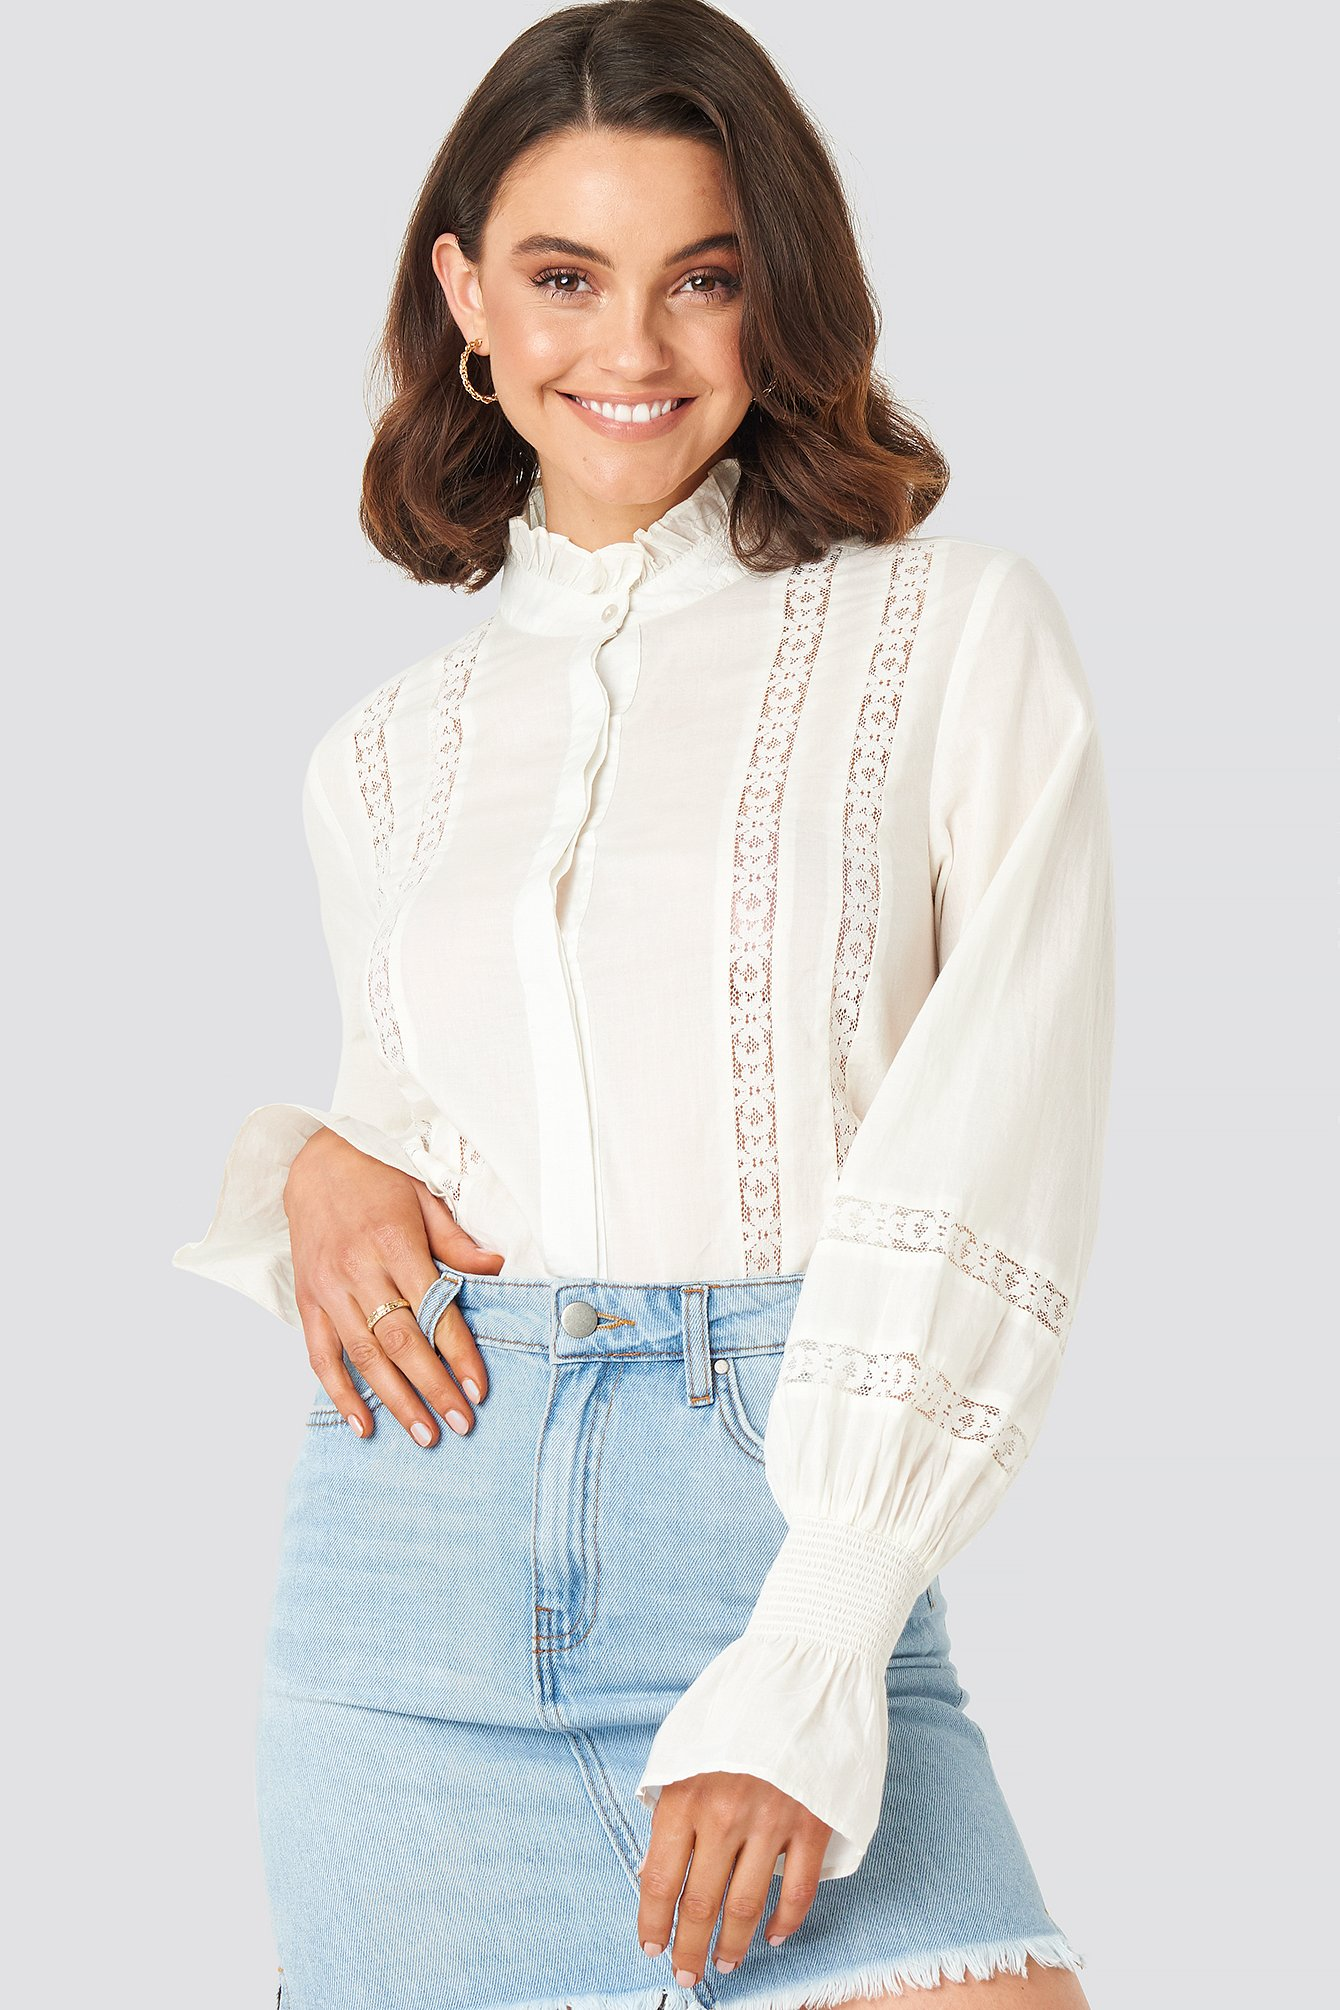 Queen Of Jetlags X Na-kd Lace Detail Puffy Blouse White In Off White